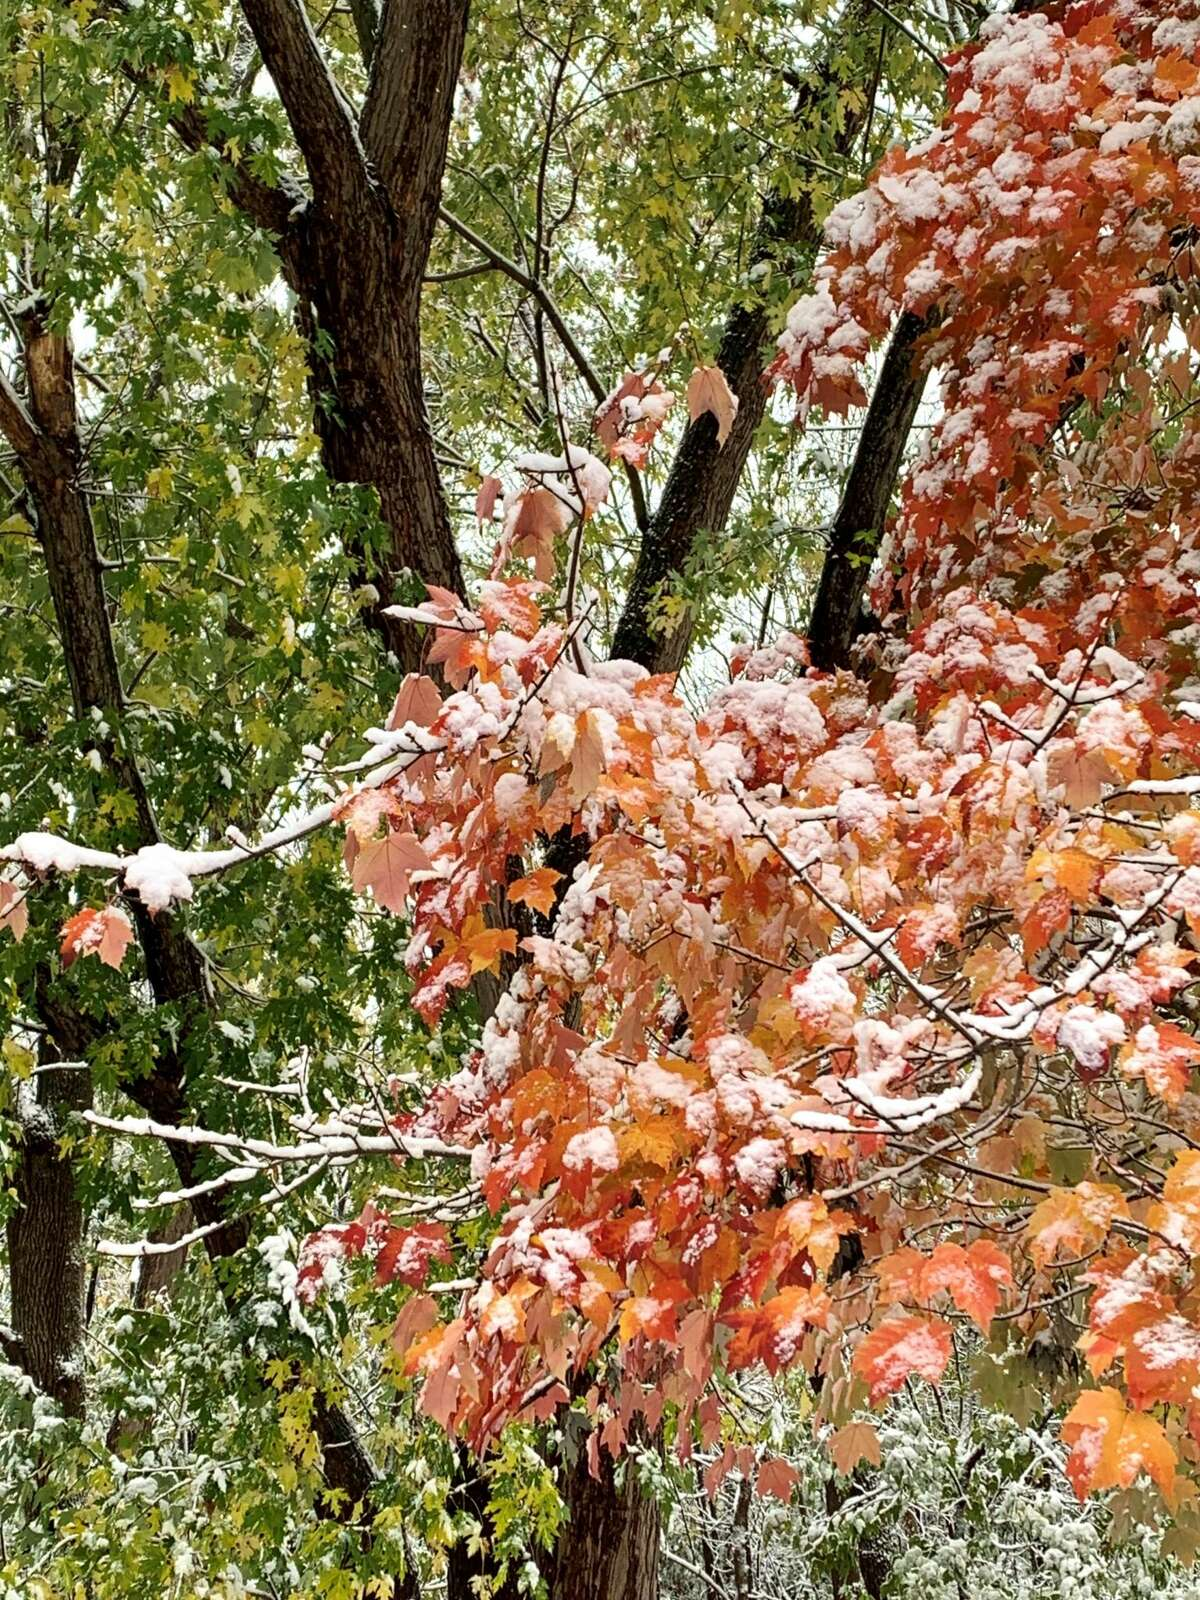 Kathy Colman of Cohoes noticed the the ironic juxtaposition of fall leaves still on trees that are coated with the early Oct. 30 snowfall. It reminds her of the October 1987 snow disaster --